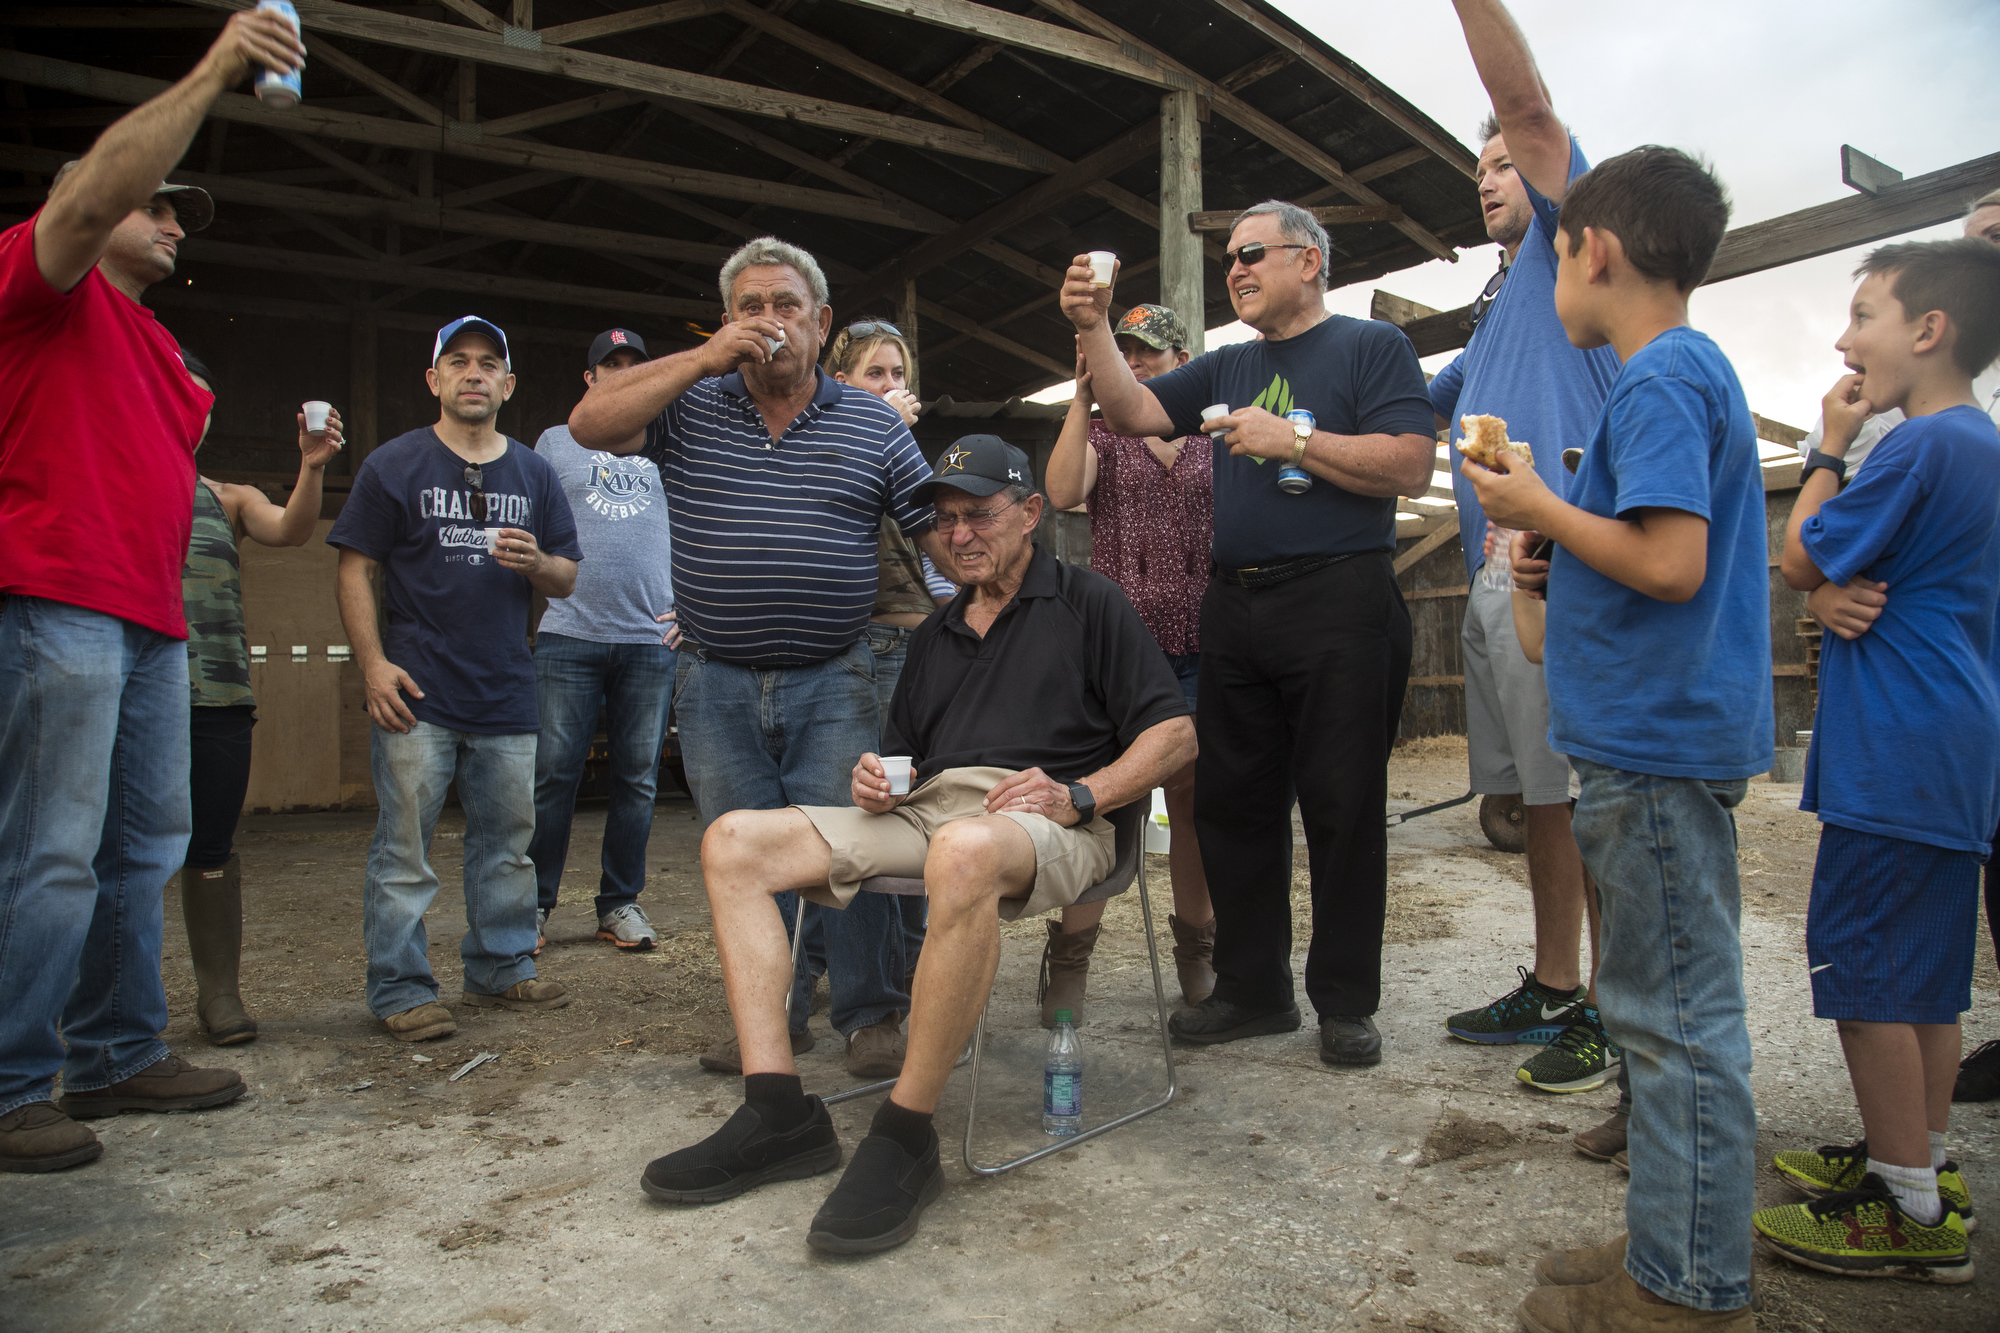 Sammy Busciglio (left of center), his two brothers and extended family toast to Tower Dairy and the Busciglio family with wine and Busch beer, on March 26, 2017, the day before the cows were moved to Georgia. Sammy's father Joe Busciglio loved to drink Busch beer. Although Jeff and Sammy own the dairy, the property was owned by a larger group of family who were ready to sell.